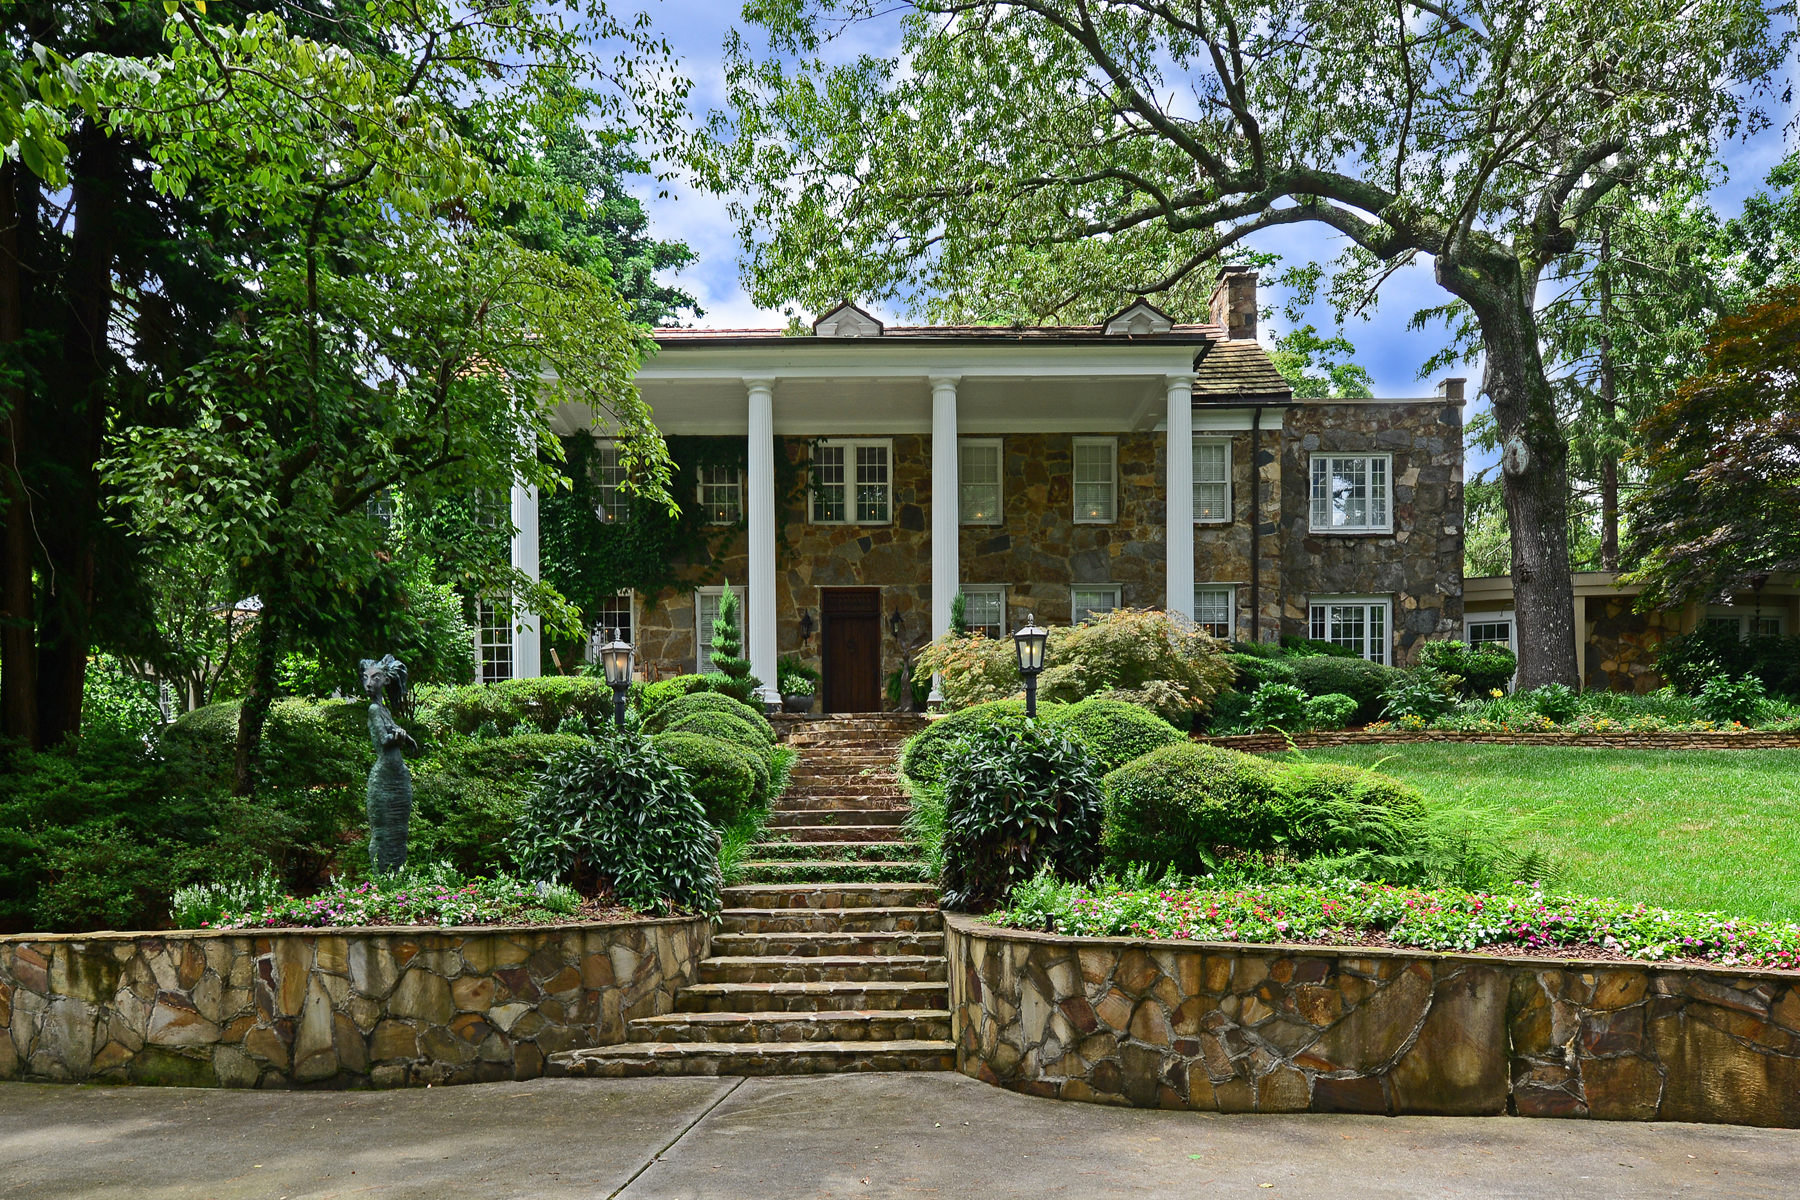 Single Family Home for Sale at Custom Restoration, Award Winning Gardens 1295 Heards Ferry Road NW Sandy Springs, Georgia, 30328 United States